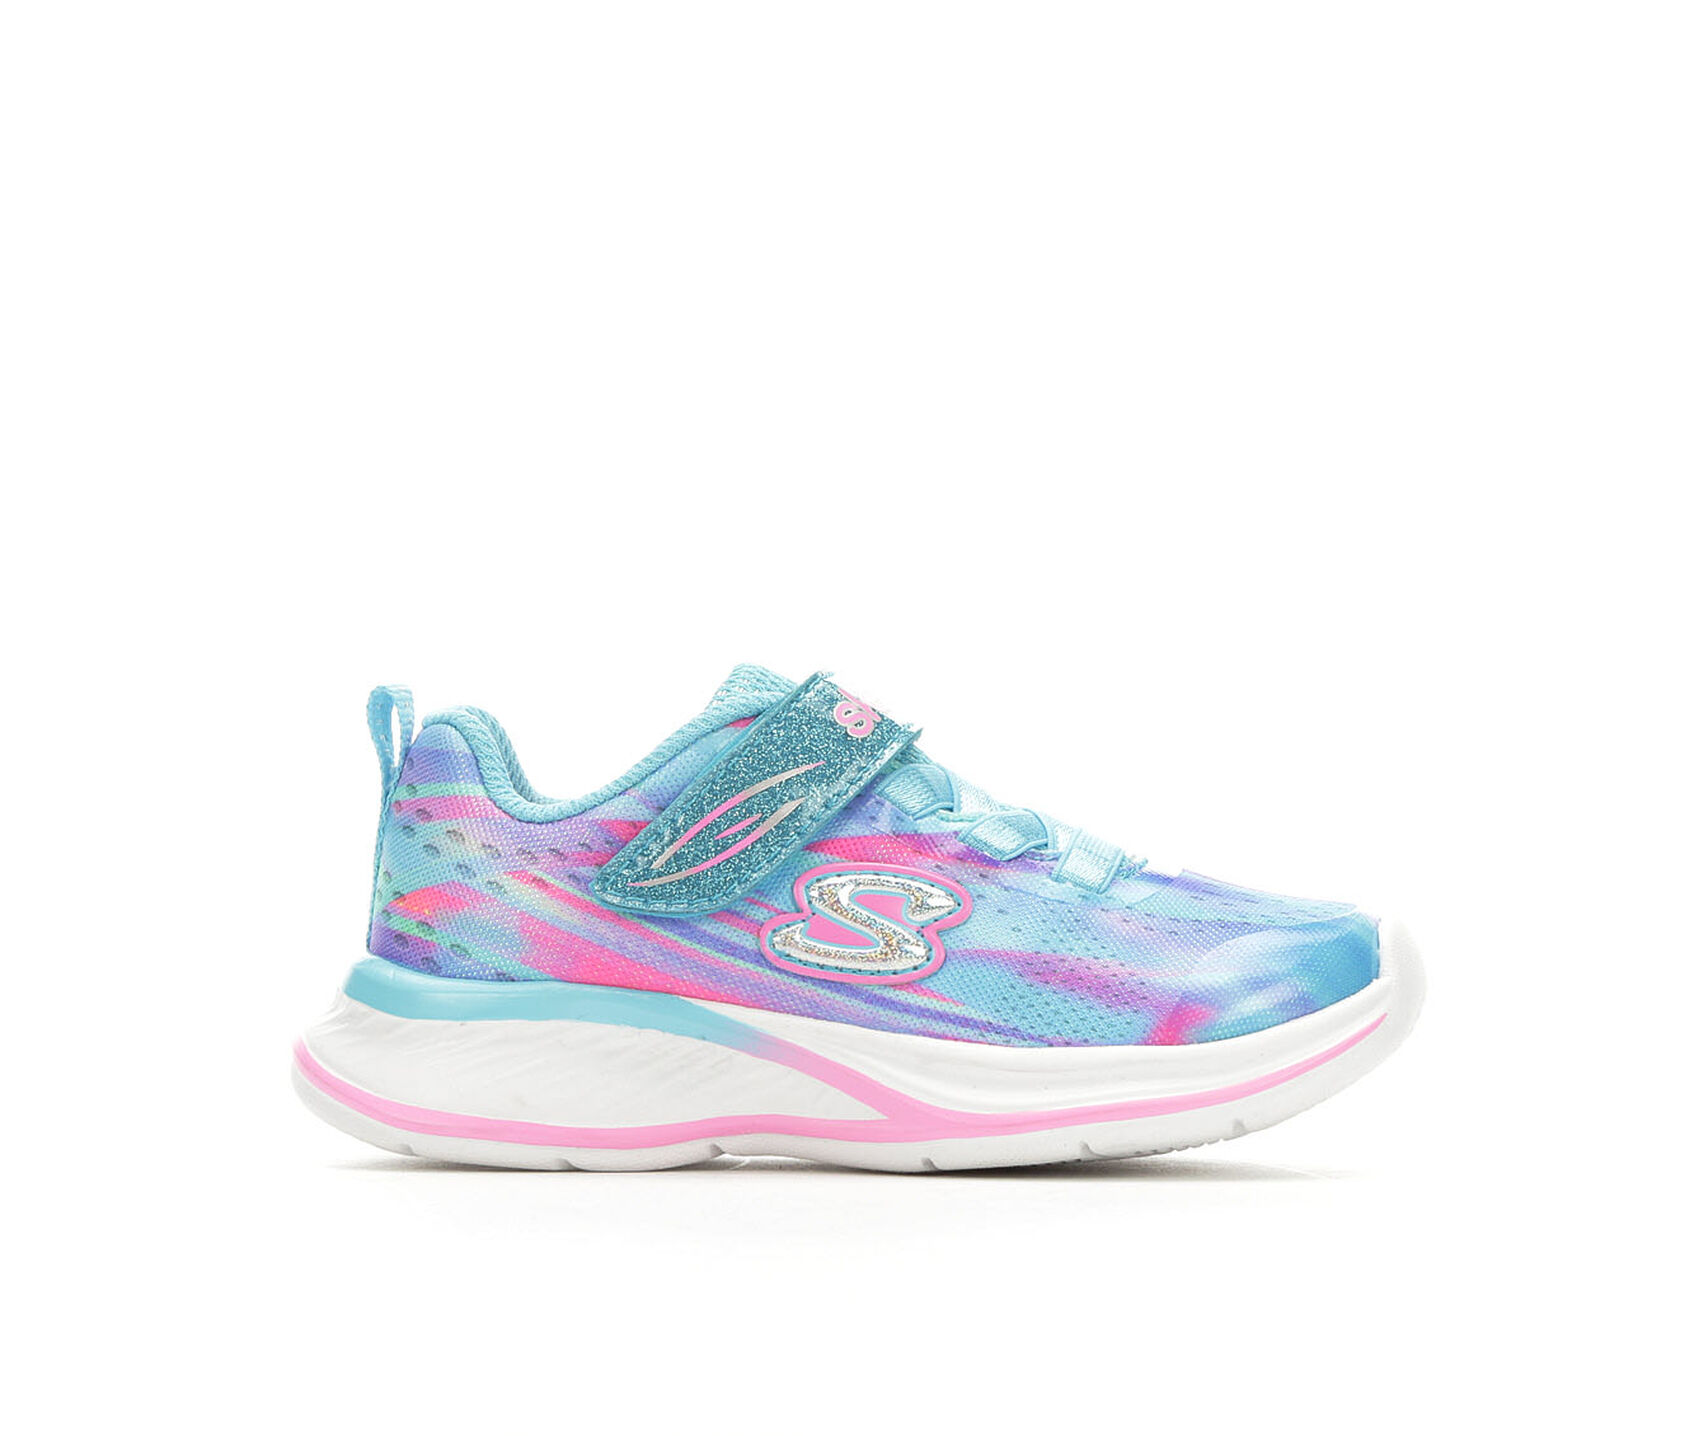 skechers shoes new arrival for girls